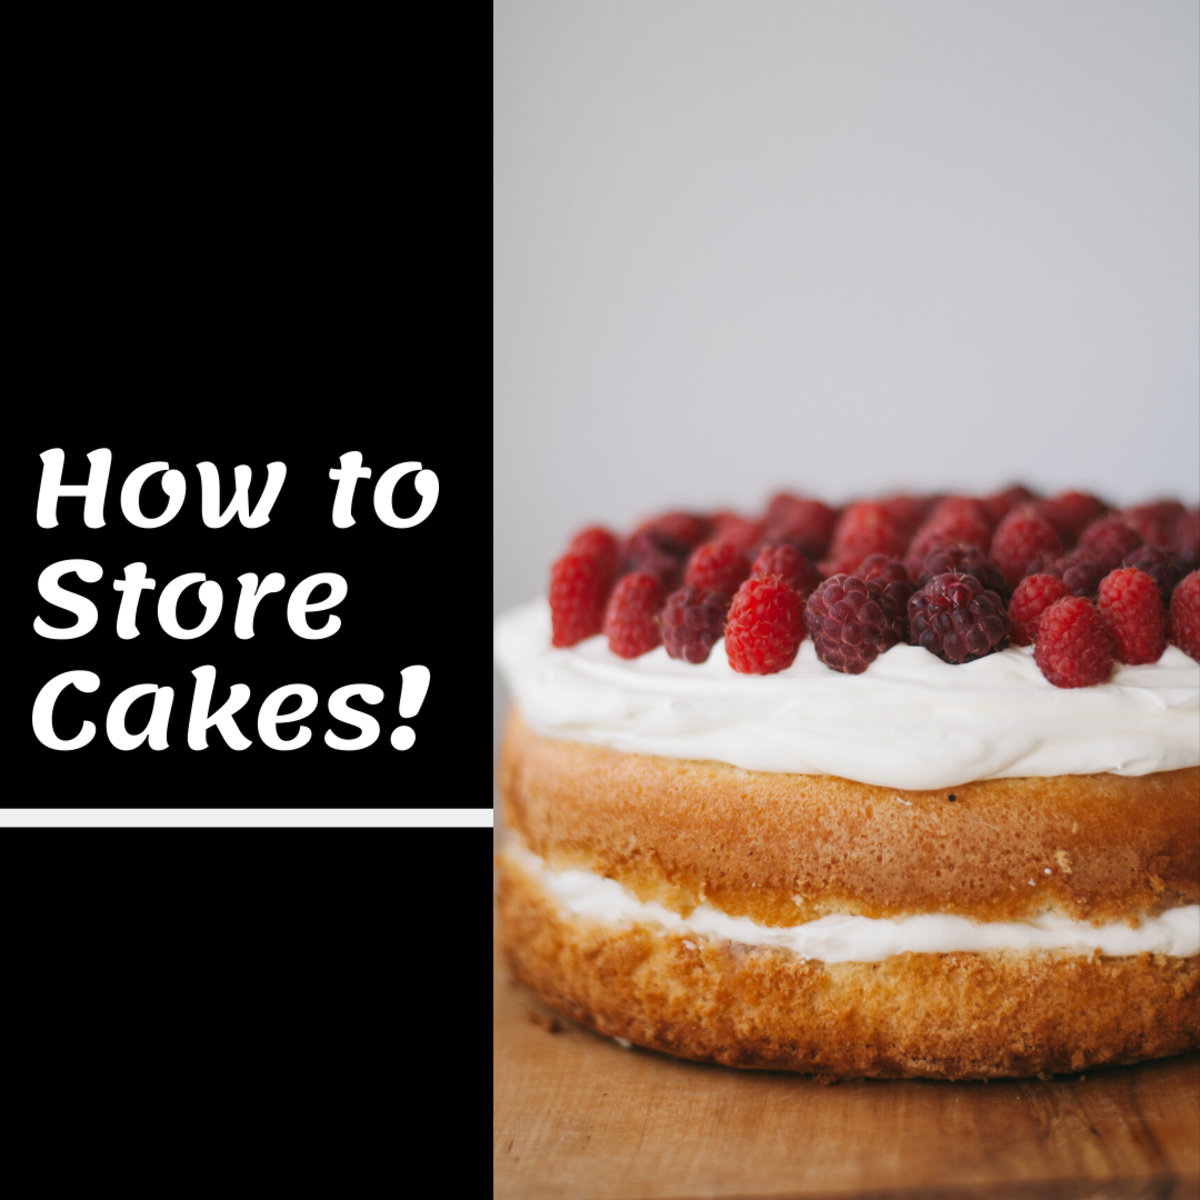 Storing cakes can be difficult. Read on to learn how to do it best!